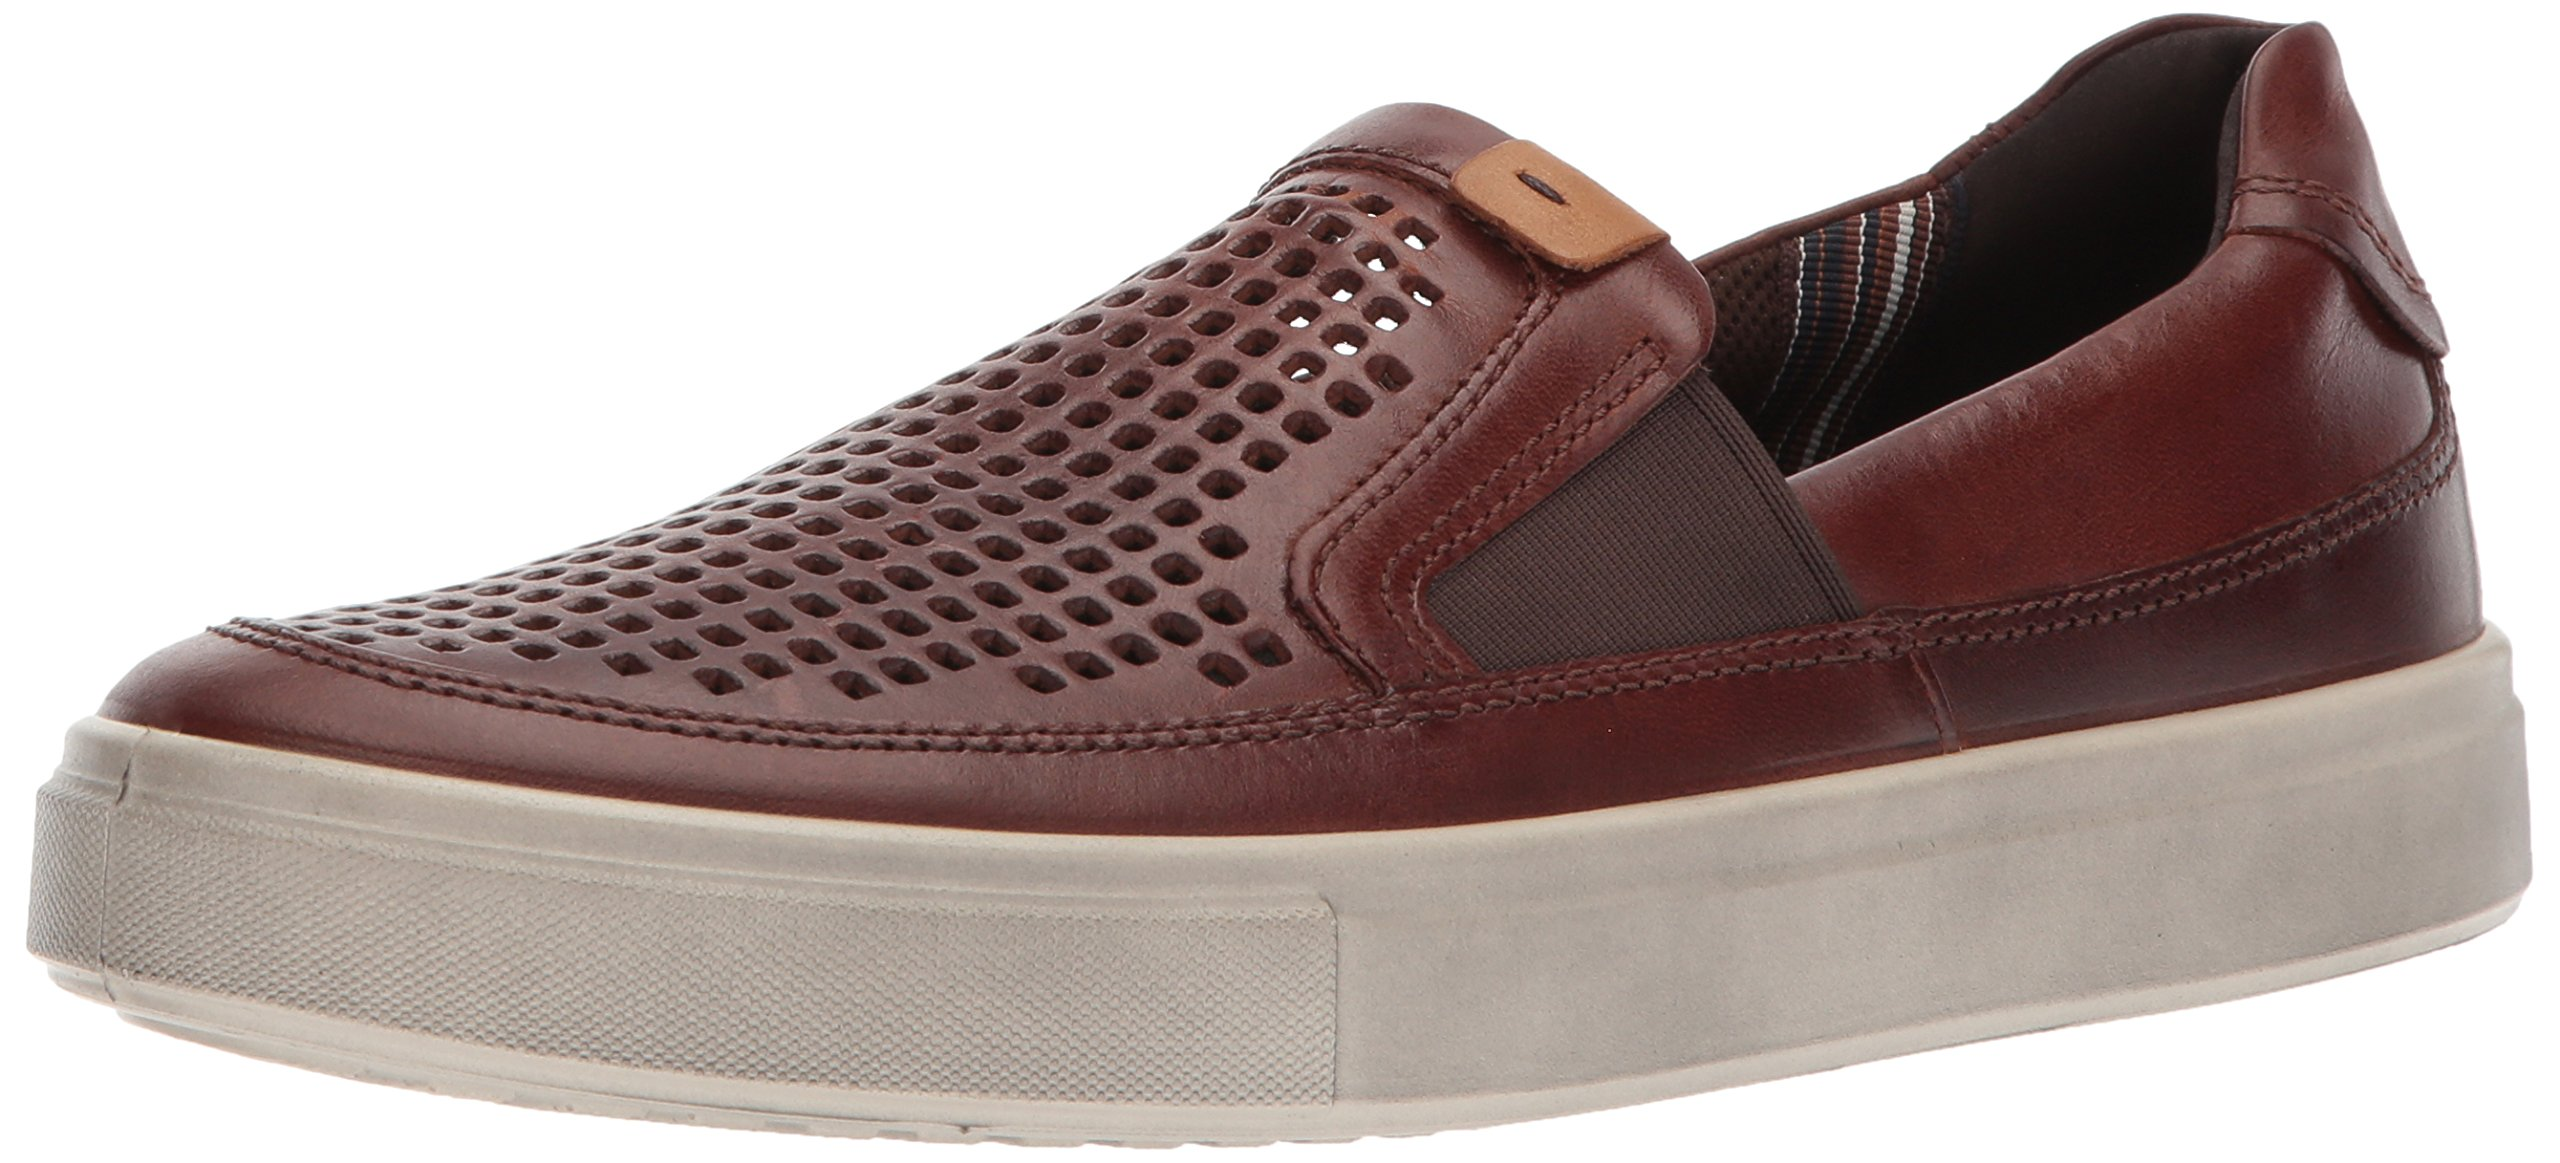 ECCO Men's Kyle Perforated Slip on Fashion Sneaker,Cognac,45 EU/11-11.5 M US